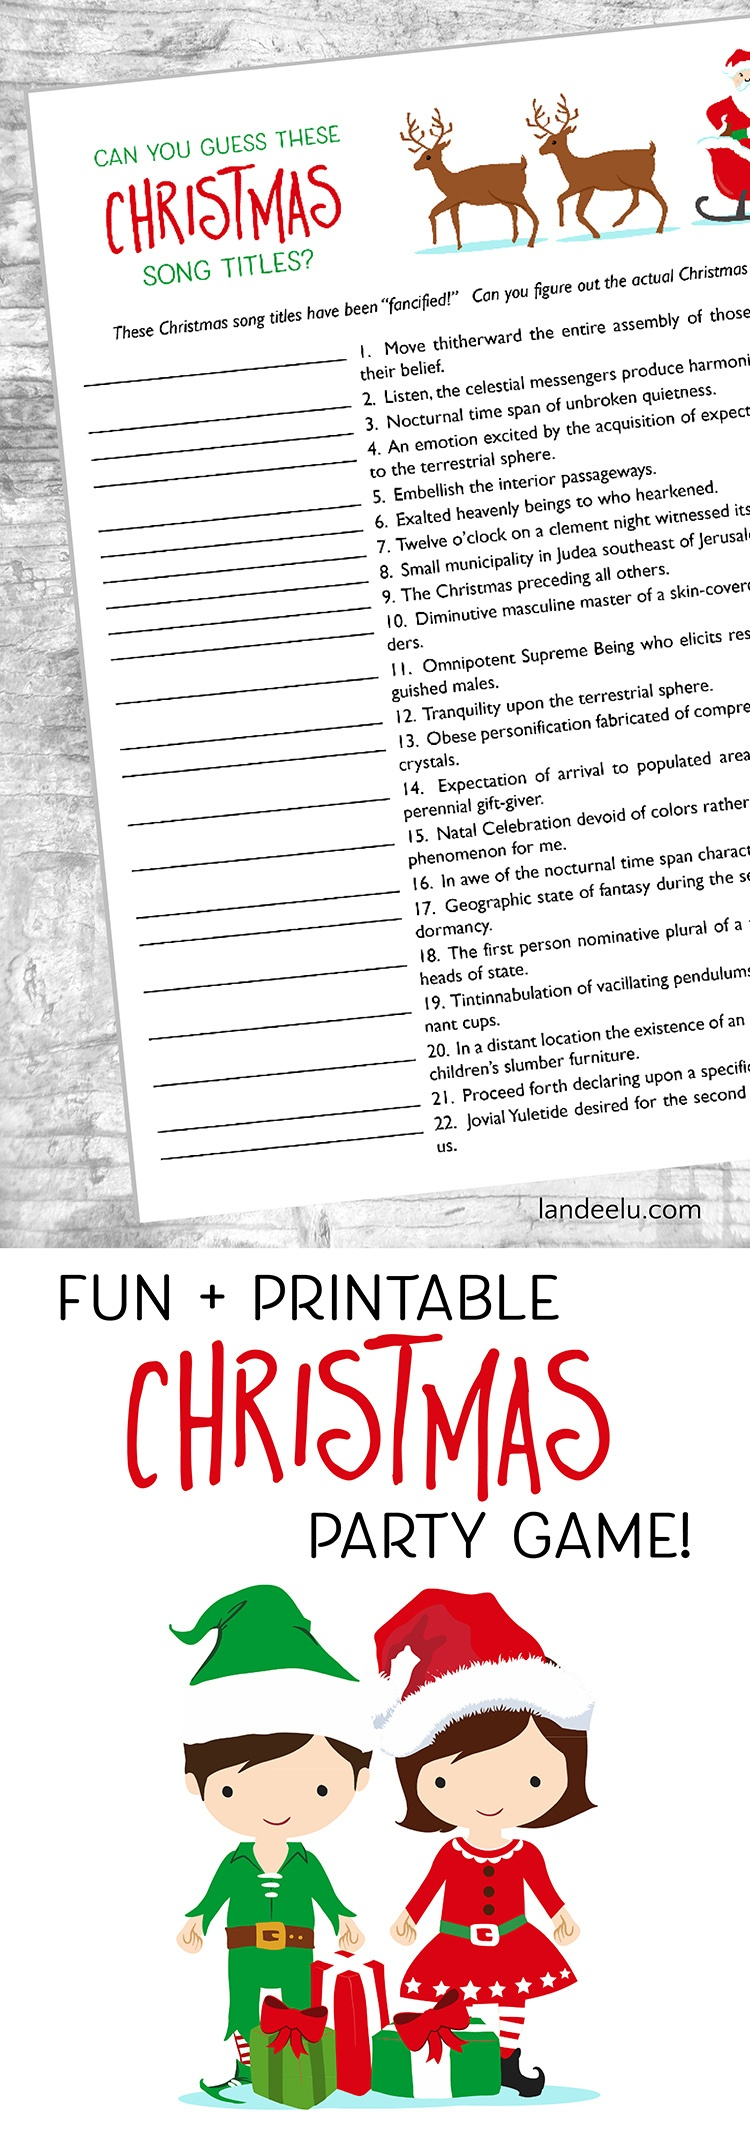 Christmas Games: Guess These Christmas Songs! - Landeelu - Free Printable Christmas Song Picture Game